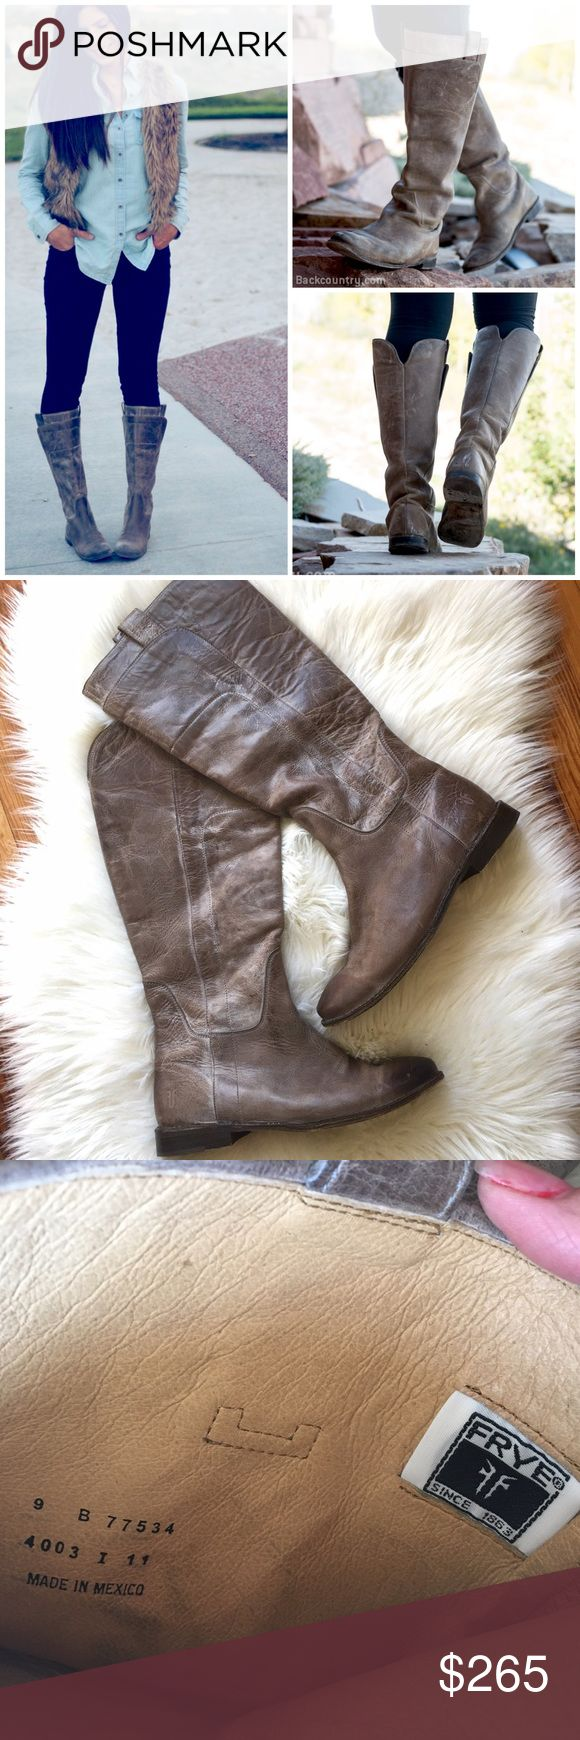 FRYE Riding Boots Amazing rustic-looking Riding Boots by FRYE. Beautiful color. Naturally distressed. Very good condition. These will last for many many years. Frye Shoes Winter & Rain Boots